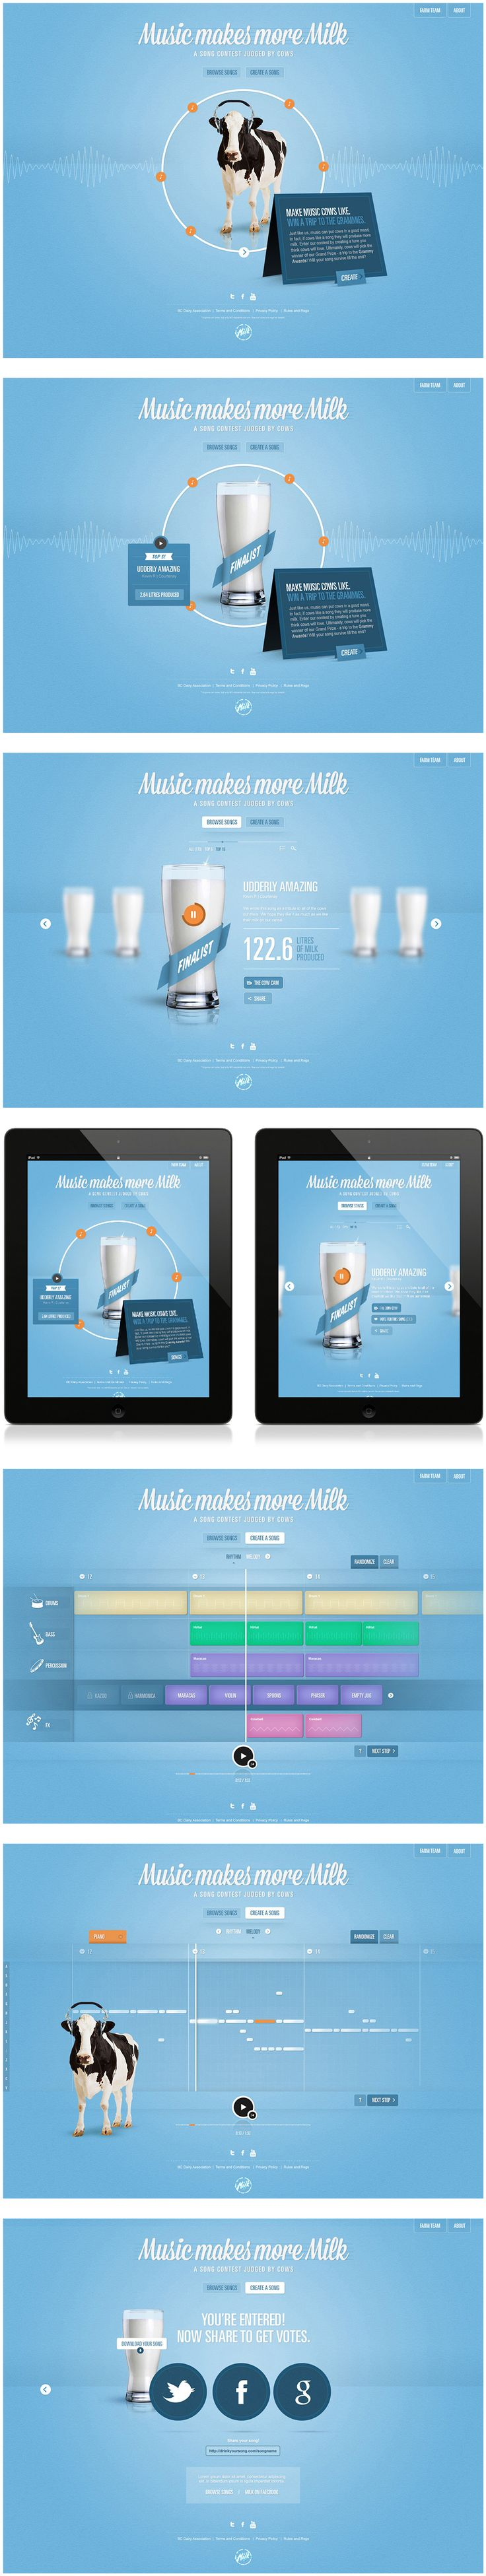 Cool Web Design on the Internet, Music Makes More Milk. http://www.pinterest.com/alfredchong/web-design/ more on http://html5themes.org